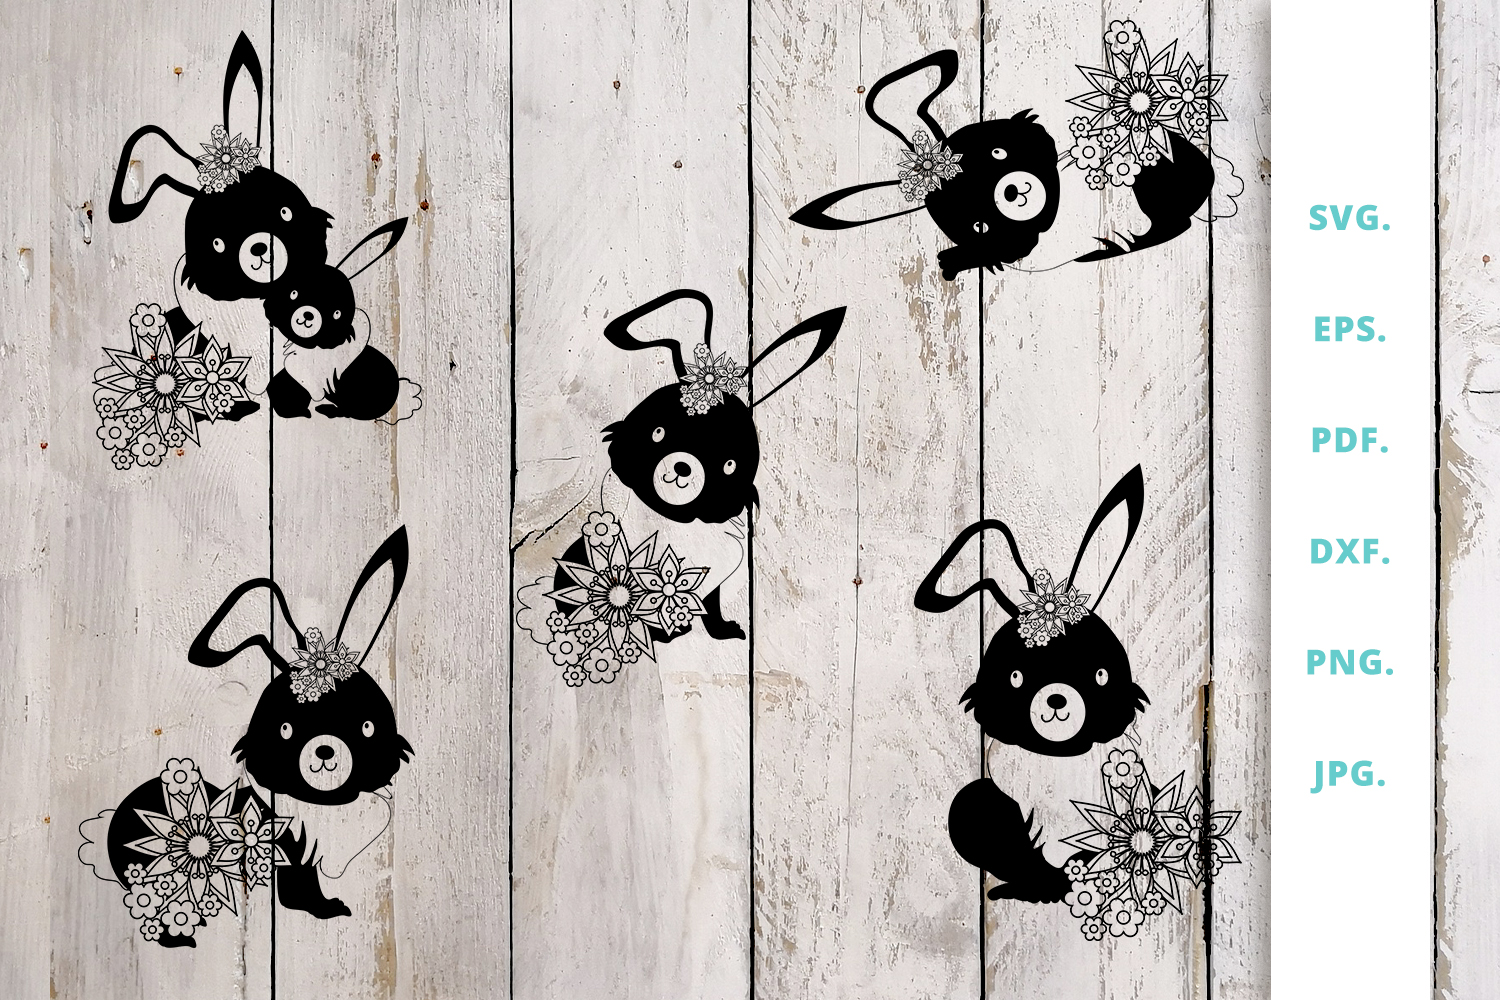 Download Free Floral Easter Bunny Cut File Bundle Graphic By Sintegra for Cricut Explore, Silhouette and other cutting machines.